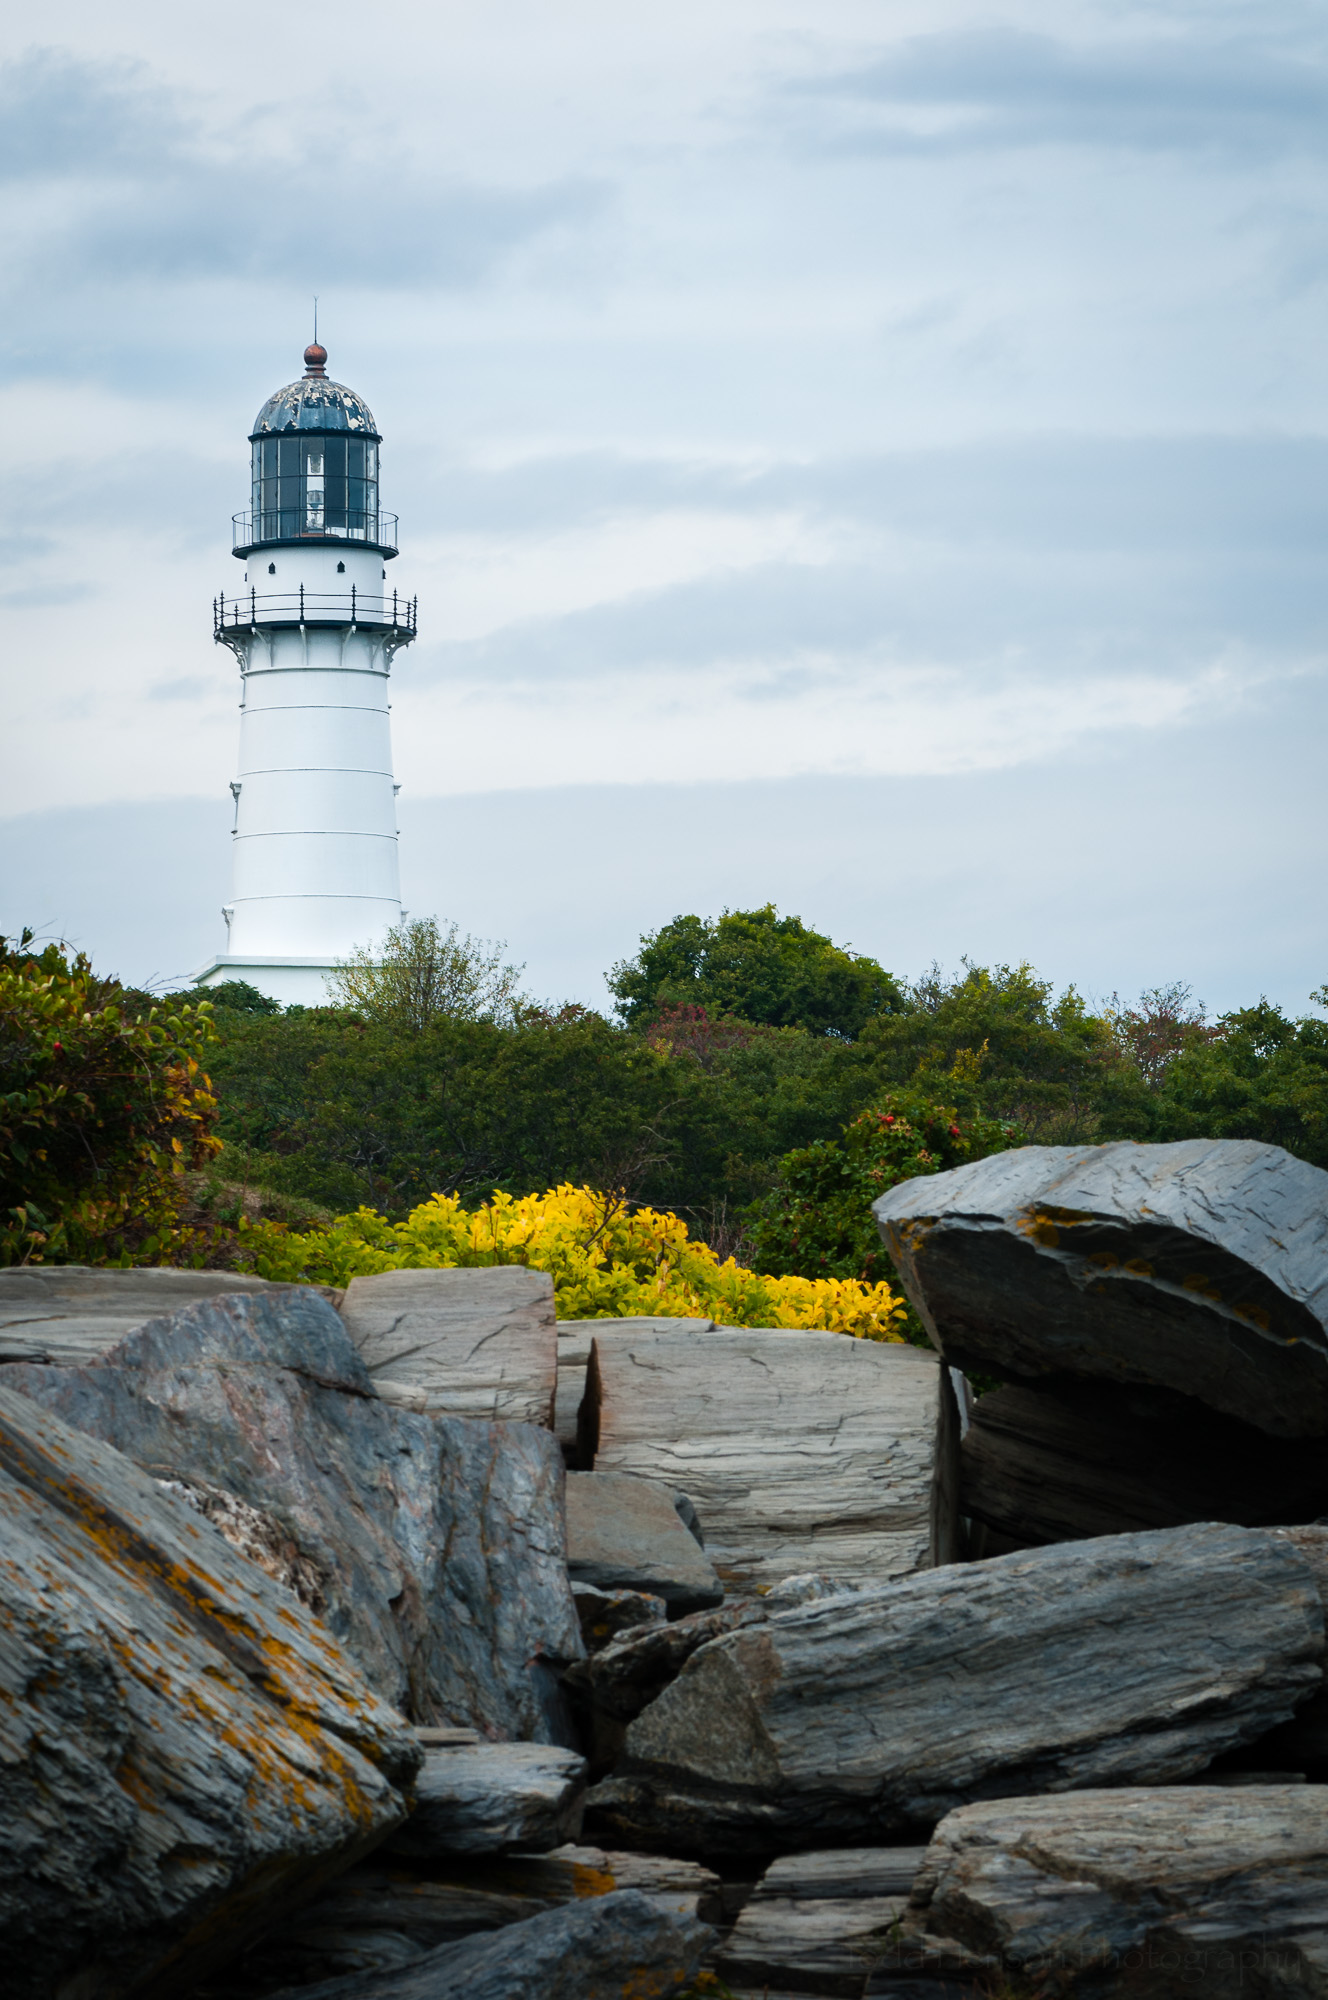 The Eastern Tower of Cape Elizabeth Light (Two Lights), in Maine, seen from rocky shore